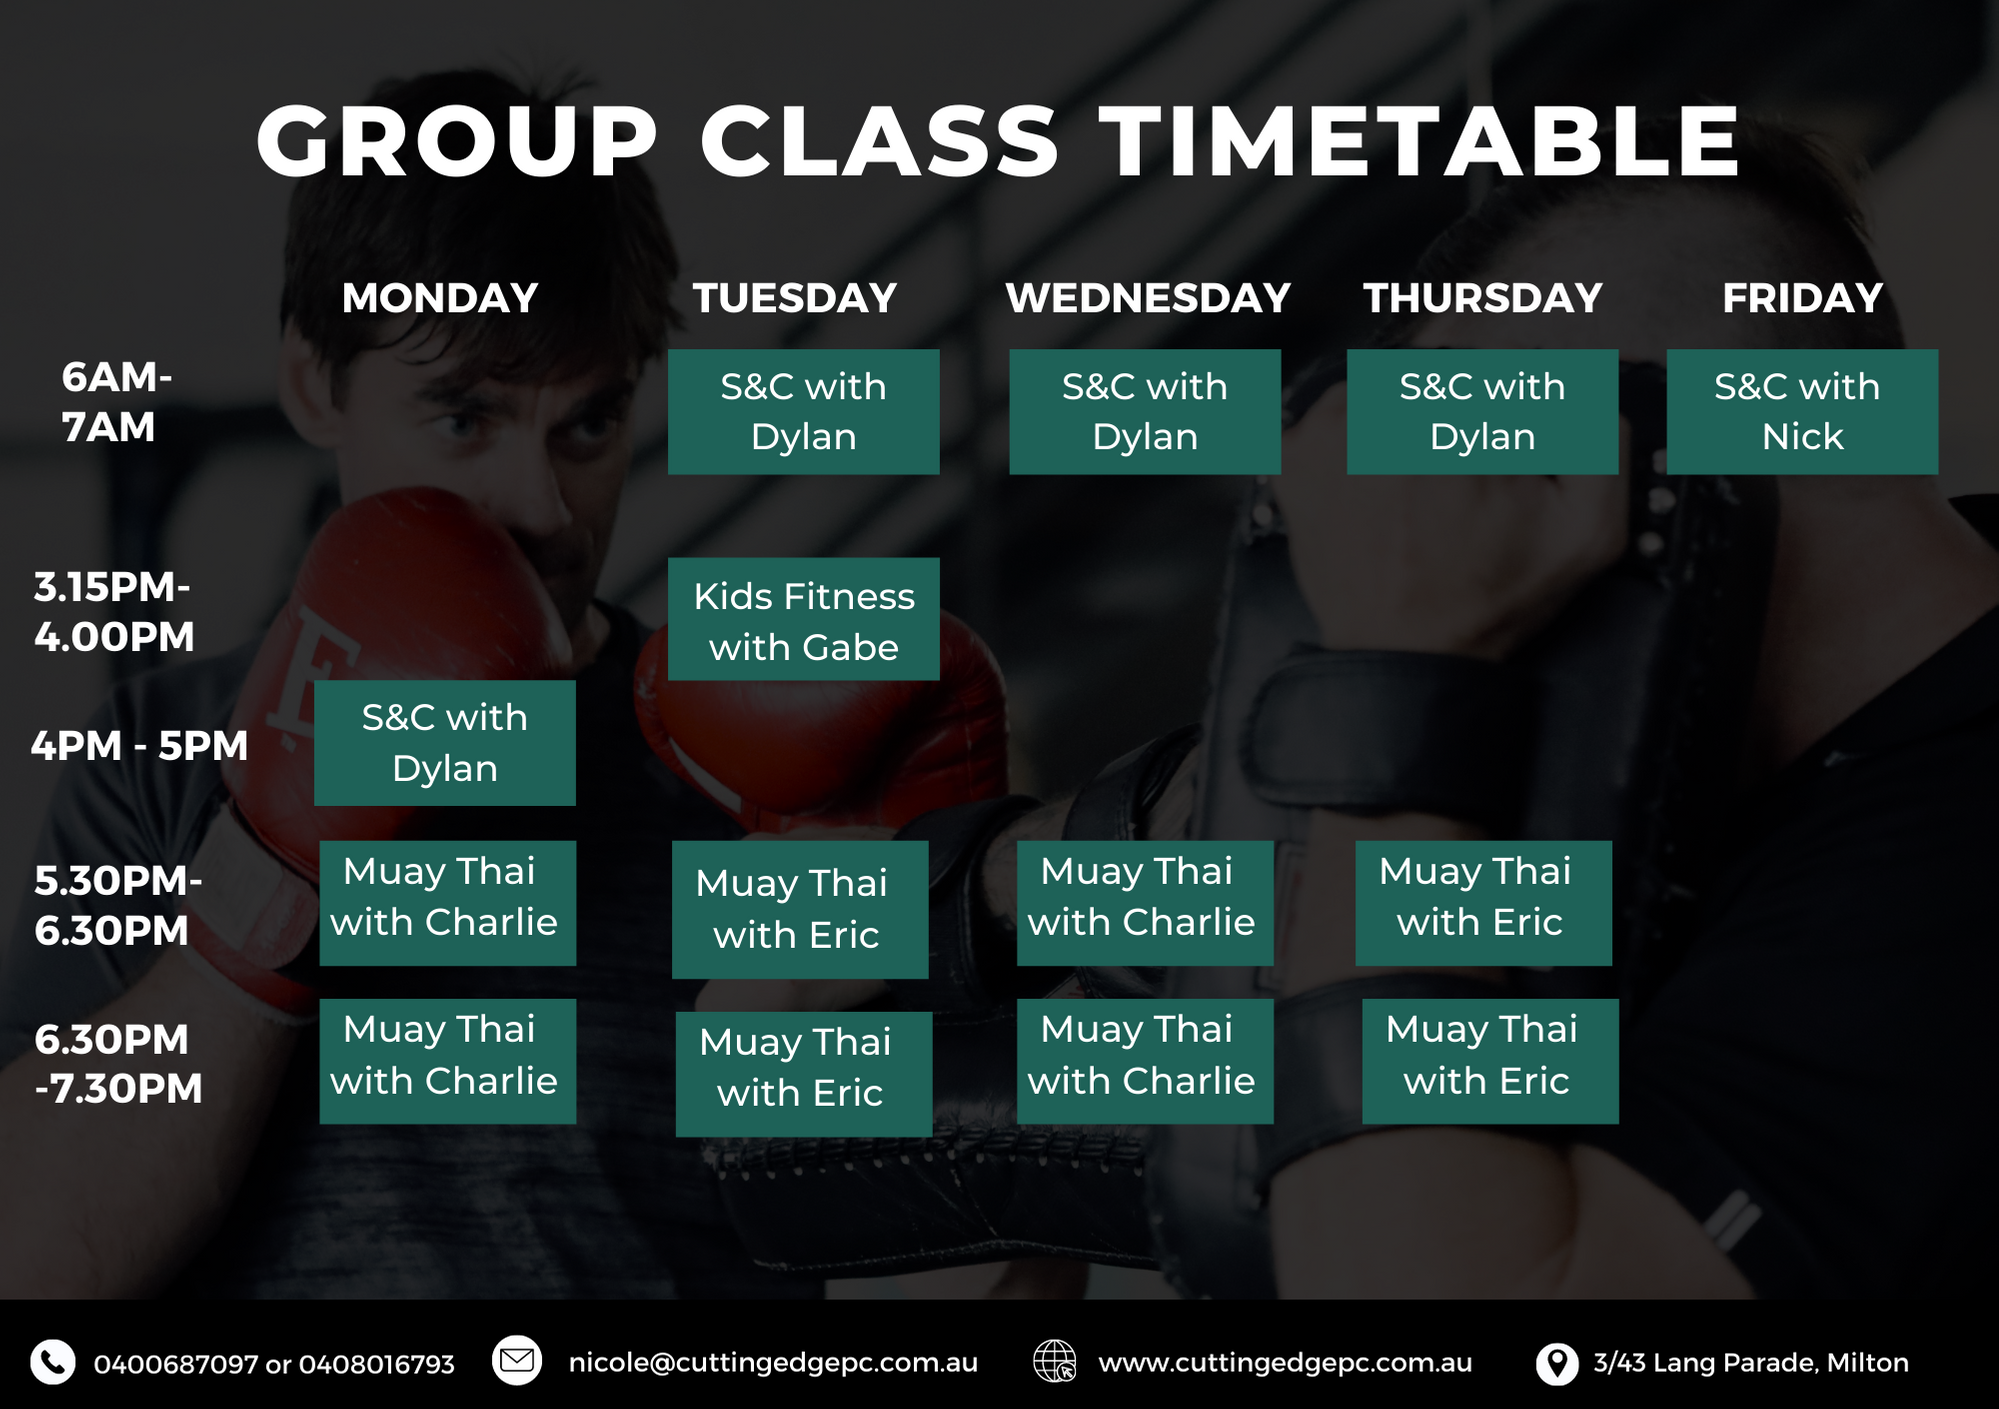 GROUP CLASS TIMETABLE